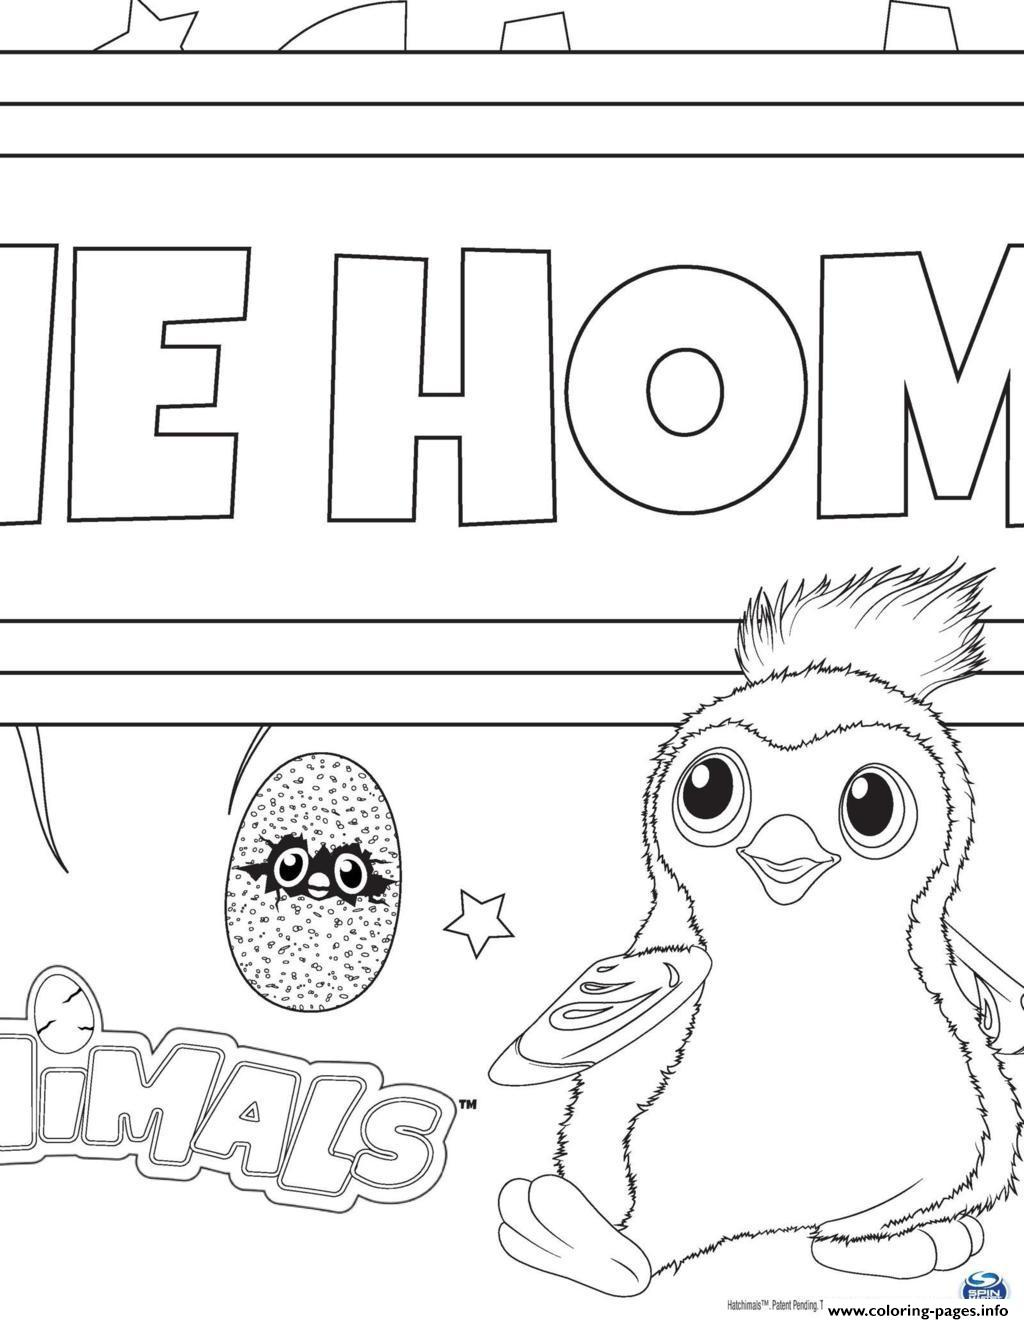 Y word coloring pages - Y Word Coloring Pages Hatchy Hatchimals Draggles Coloring Pages Printable Download